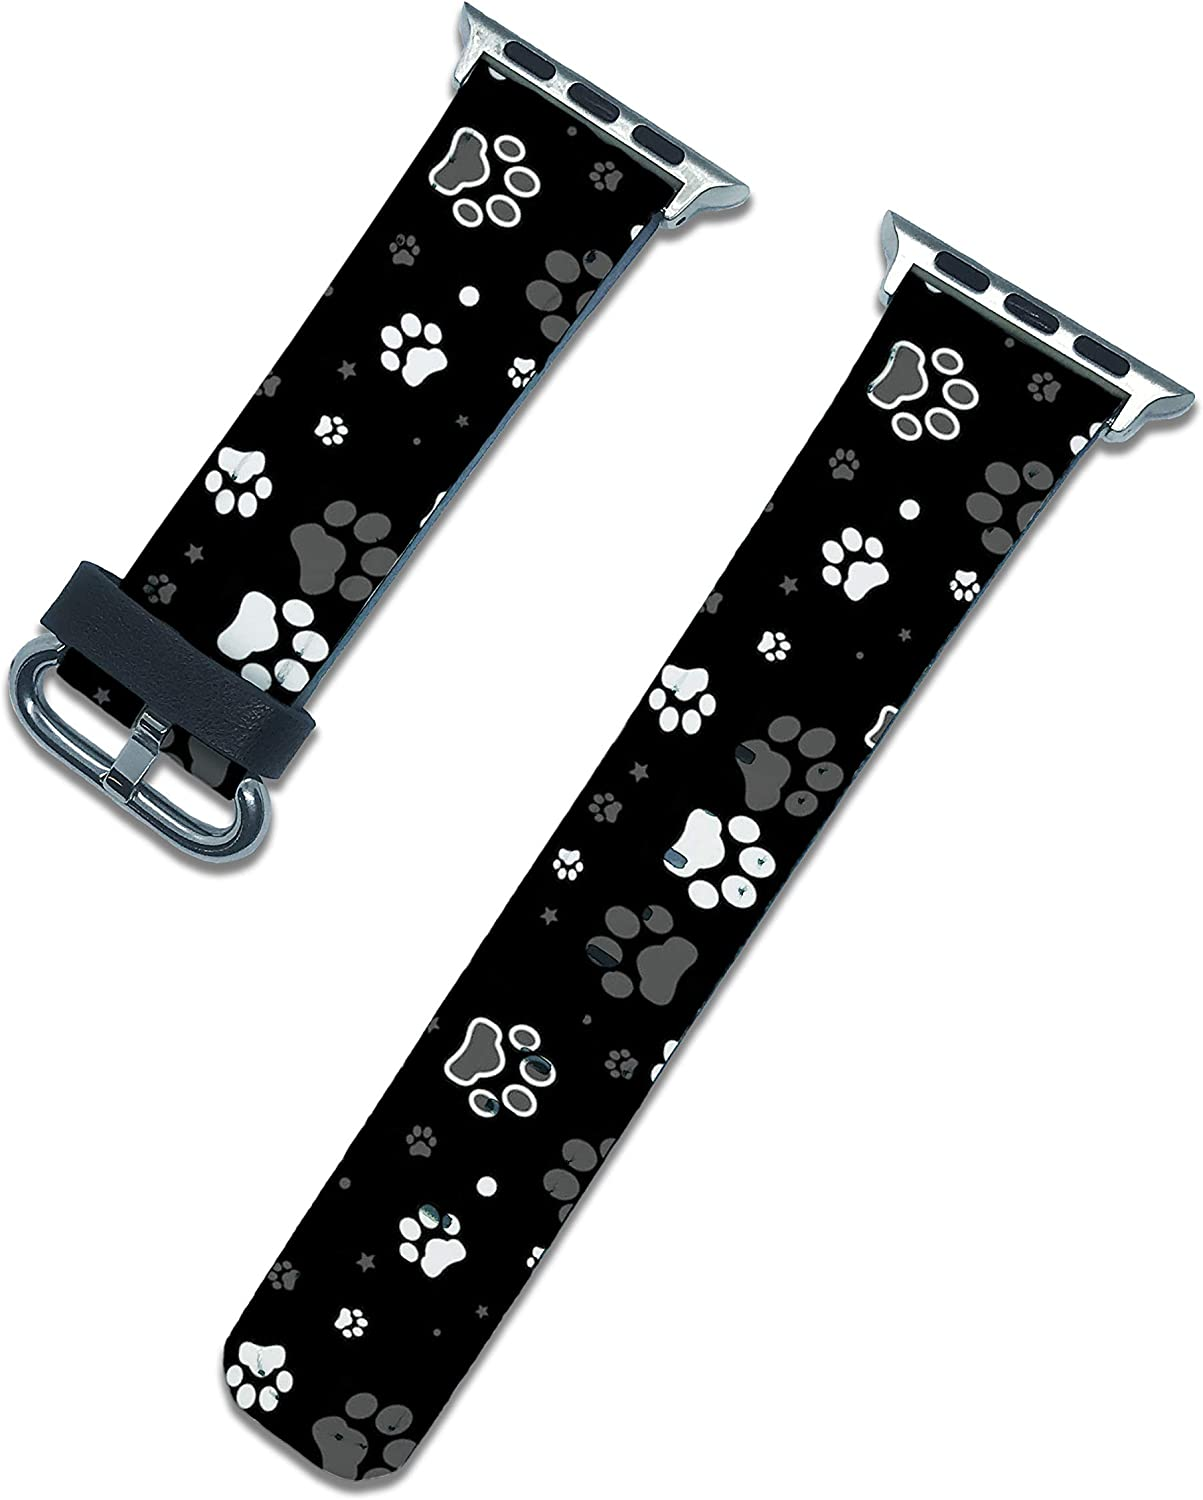 Dog Paws Replacement Band Compatible with Apple Watch Series SE 6 5 4 3 2 1 44mm 40mm 42mm 38mm iWatch Wristband Strap Leather Bands (Black, 40mm | 38mm)